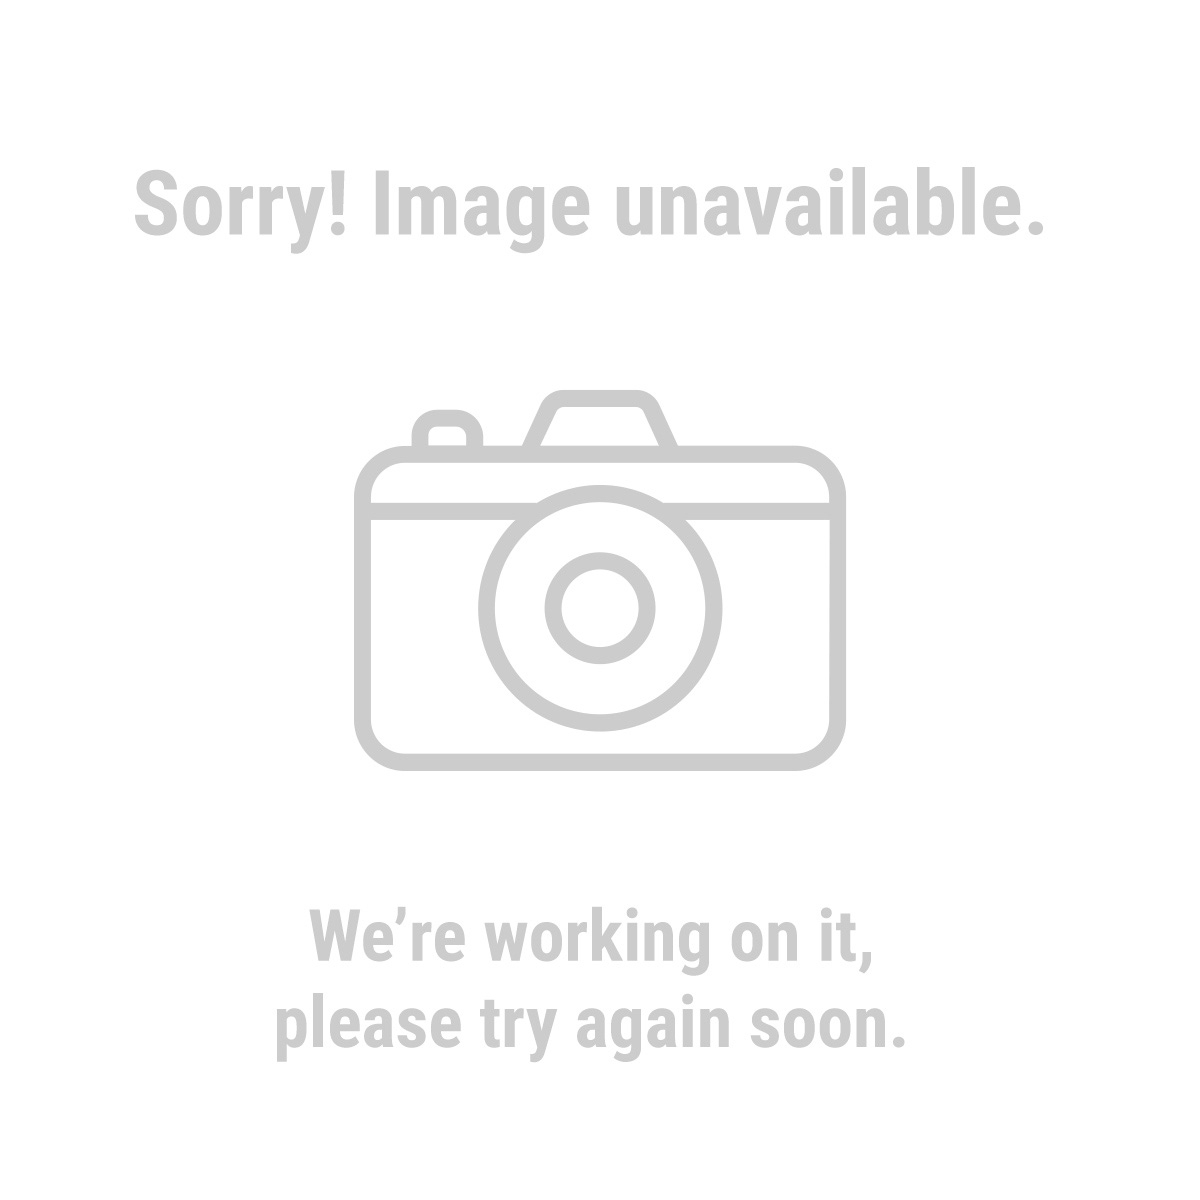 HFT 69558 12 Piece 17 in. x 14 in. 100% Cotton Terry Cloth Towels